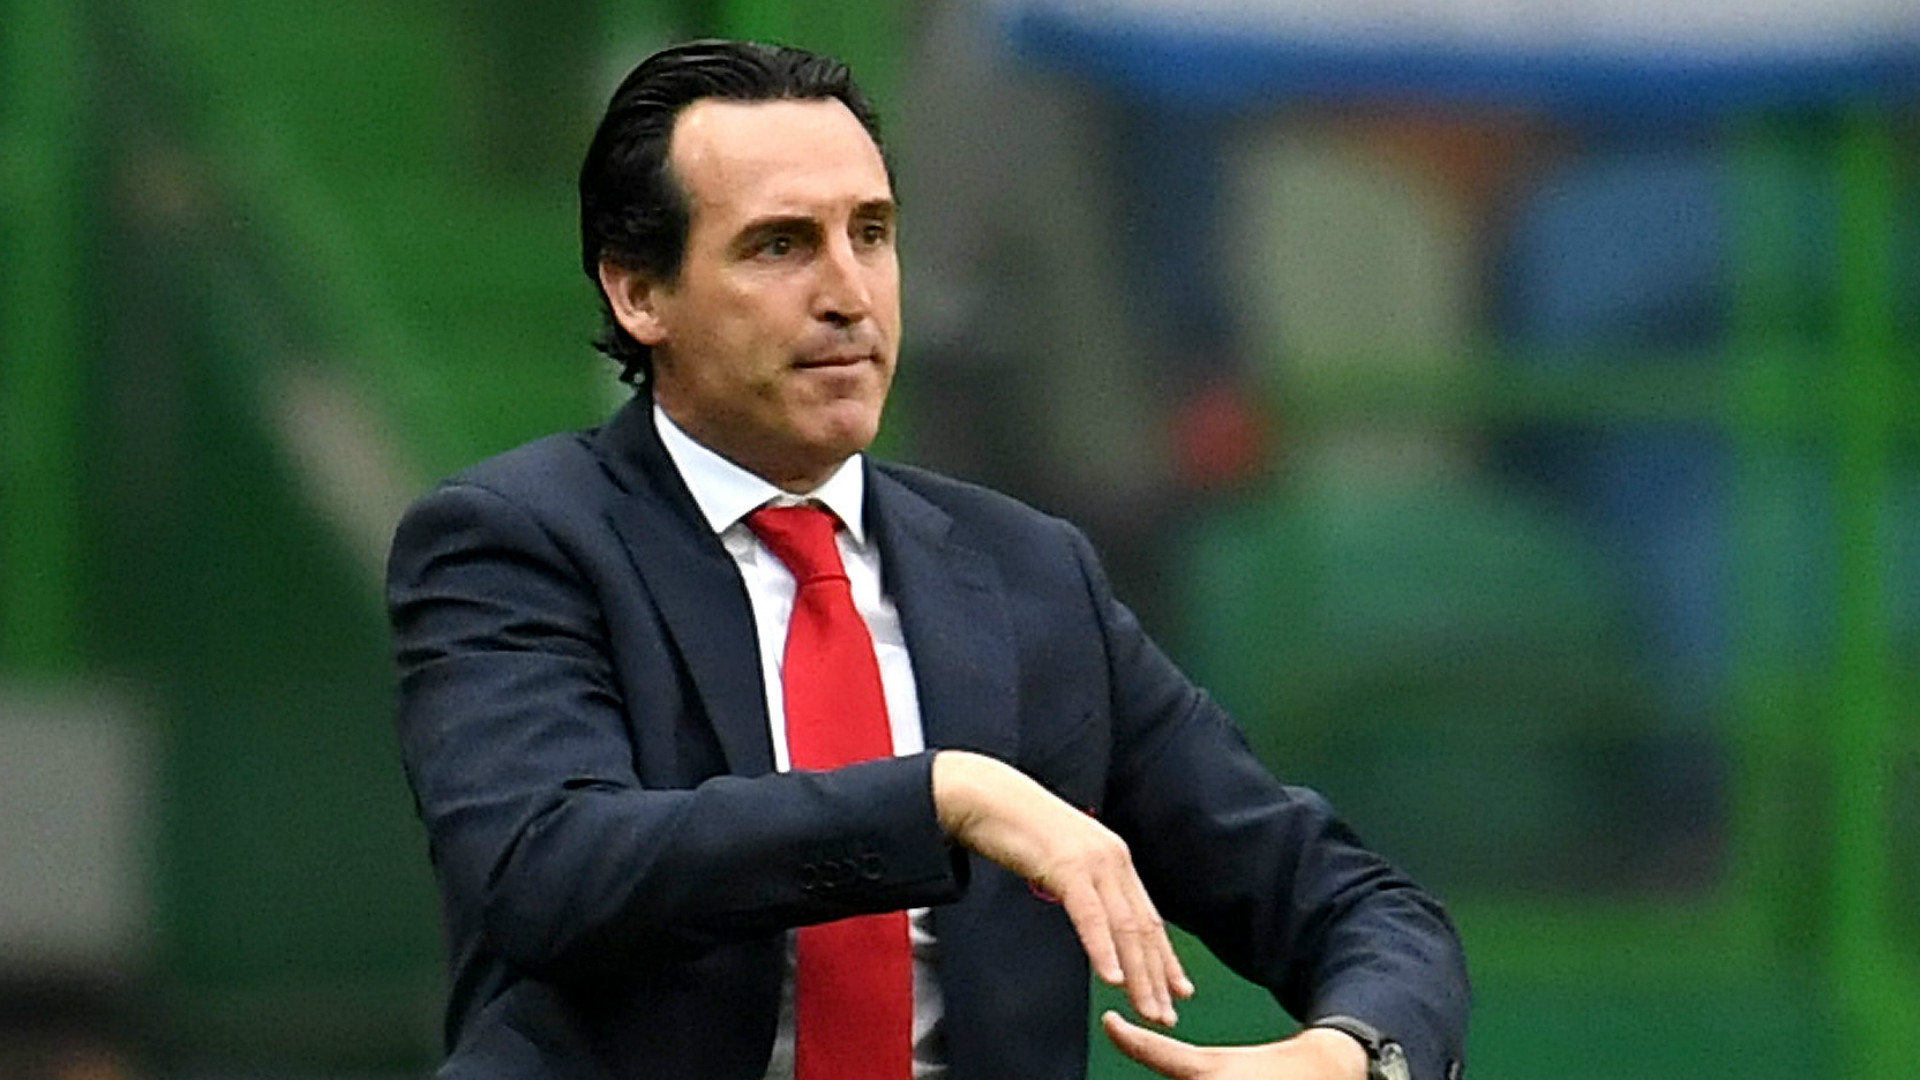 Arsenal boss Emery going with Leno to start against Liverpool